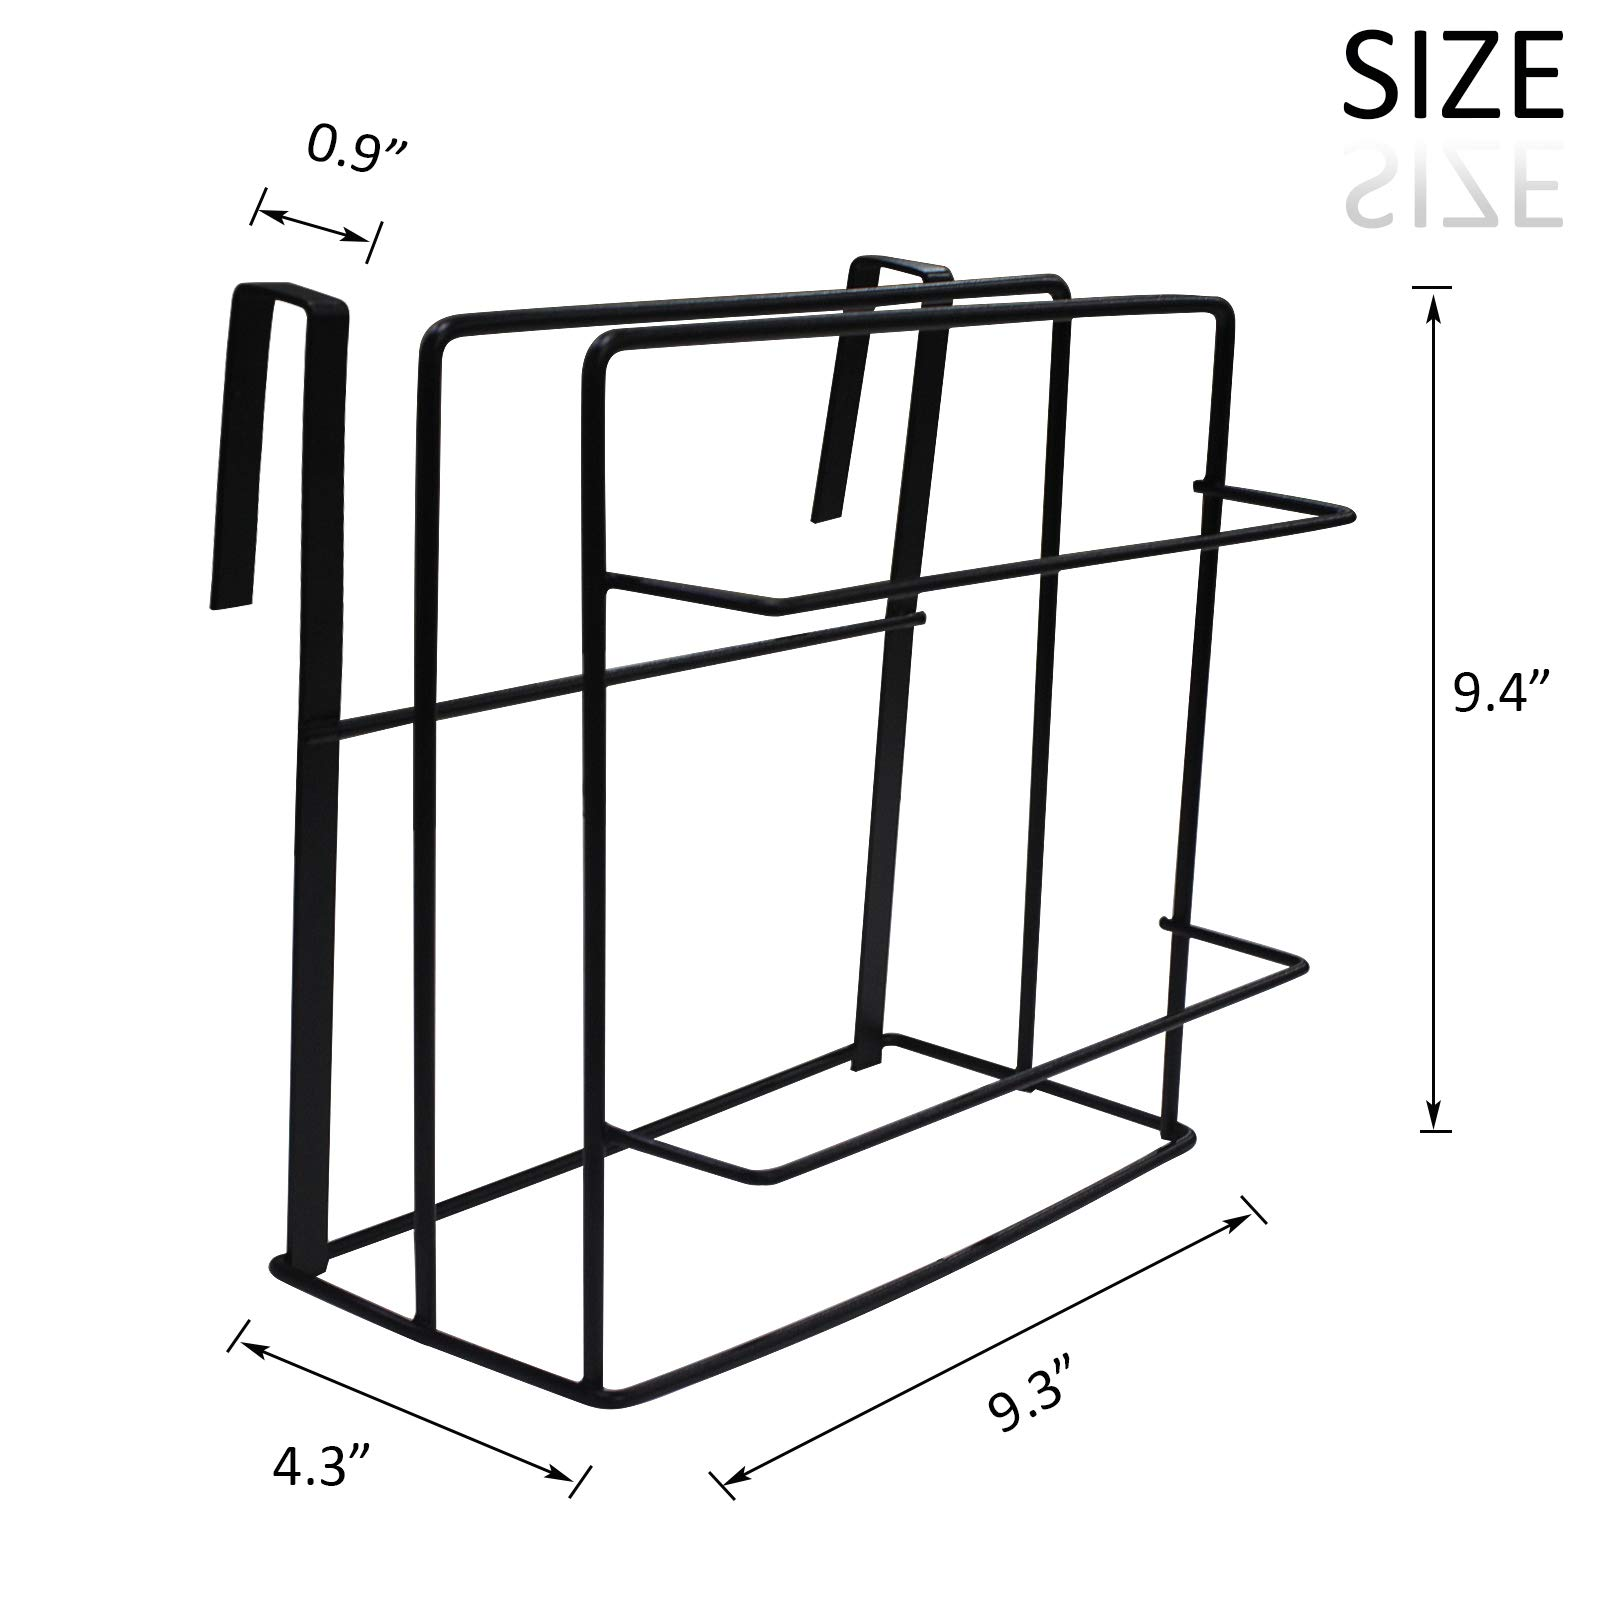 Chopping Board Holder Under Cabinet Shelf Organizer Towel Rack Multifunctional Kitchen Cookware Organizer Storage Rack Hanging Kitchen Storage Holder (Black-1pack) by Kitchen Hardware Collection (Image #2)